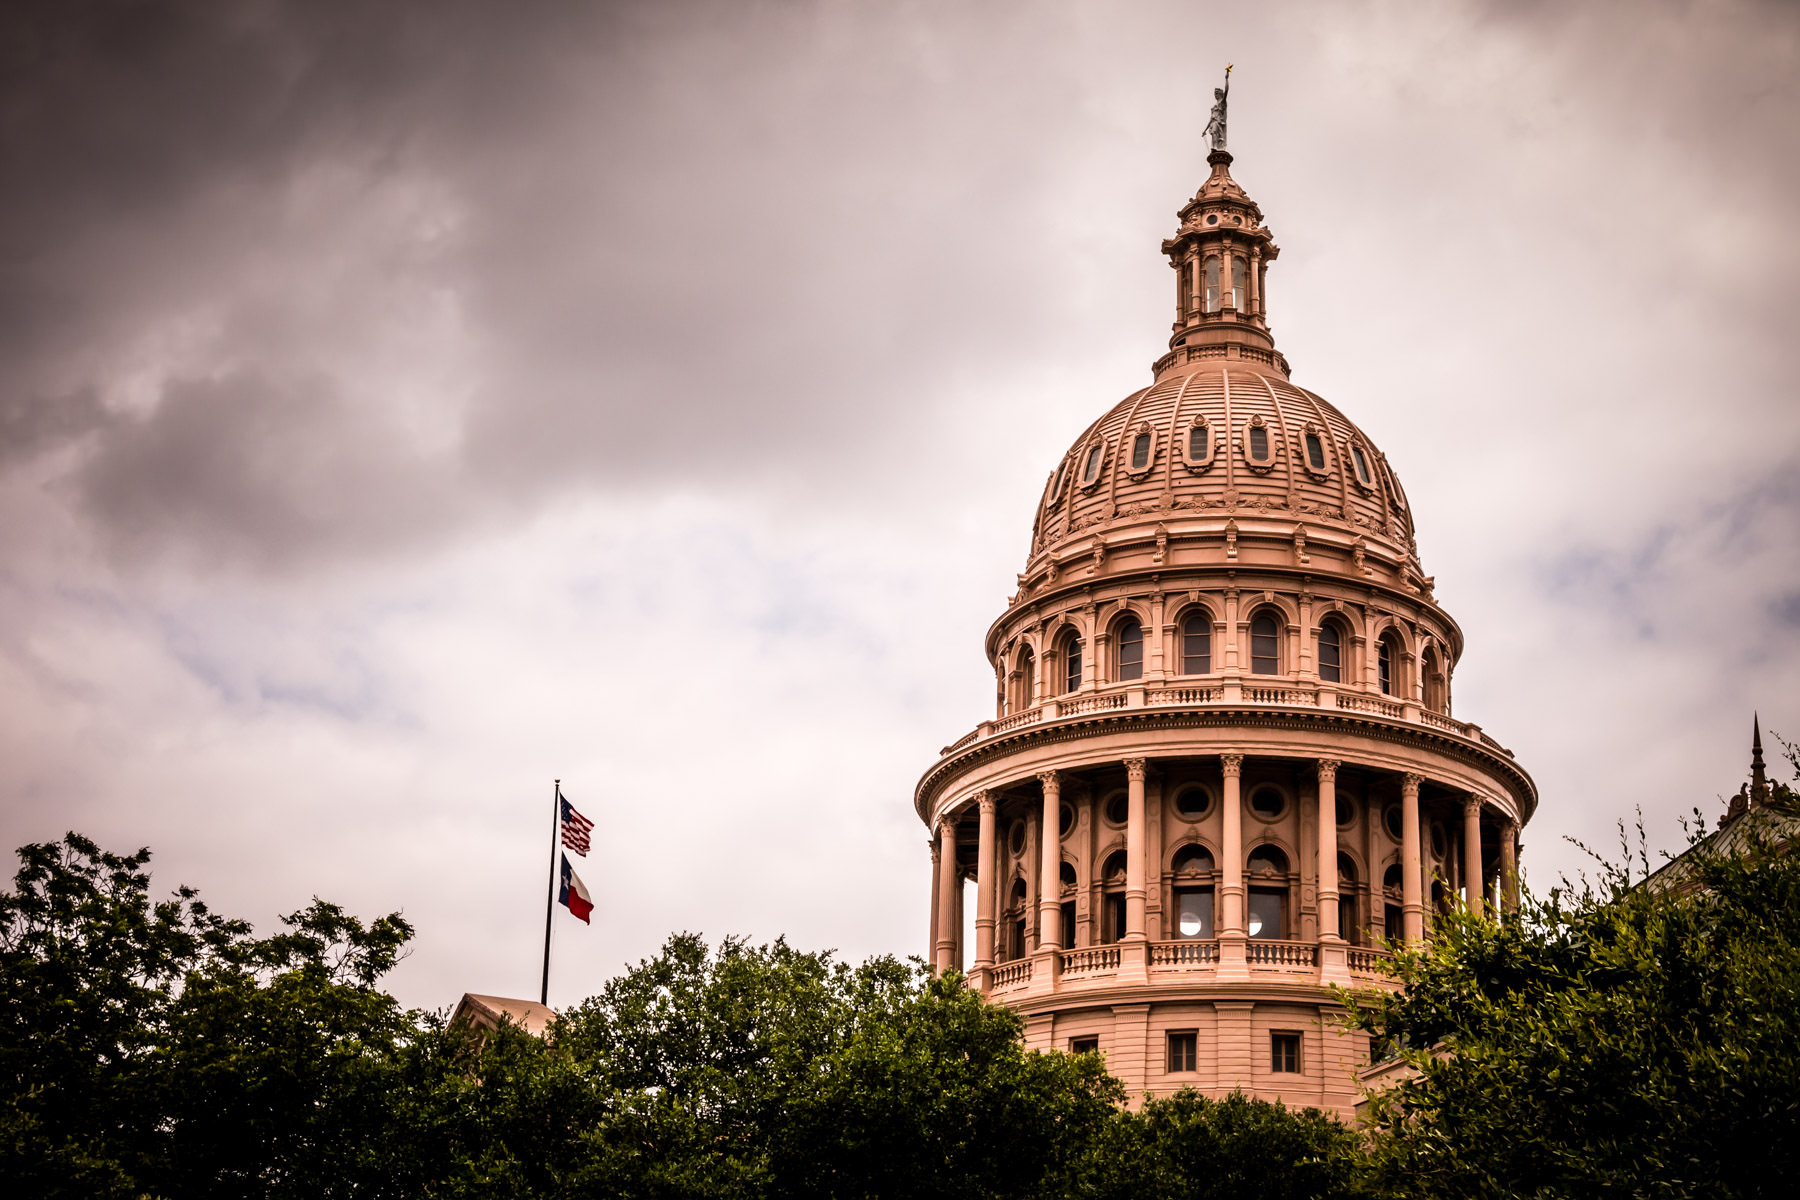 The rotunda and dome of the Texas State Capitol rises above the surrounding trees into the stormy skies over Austin.